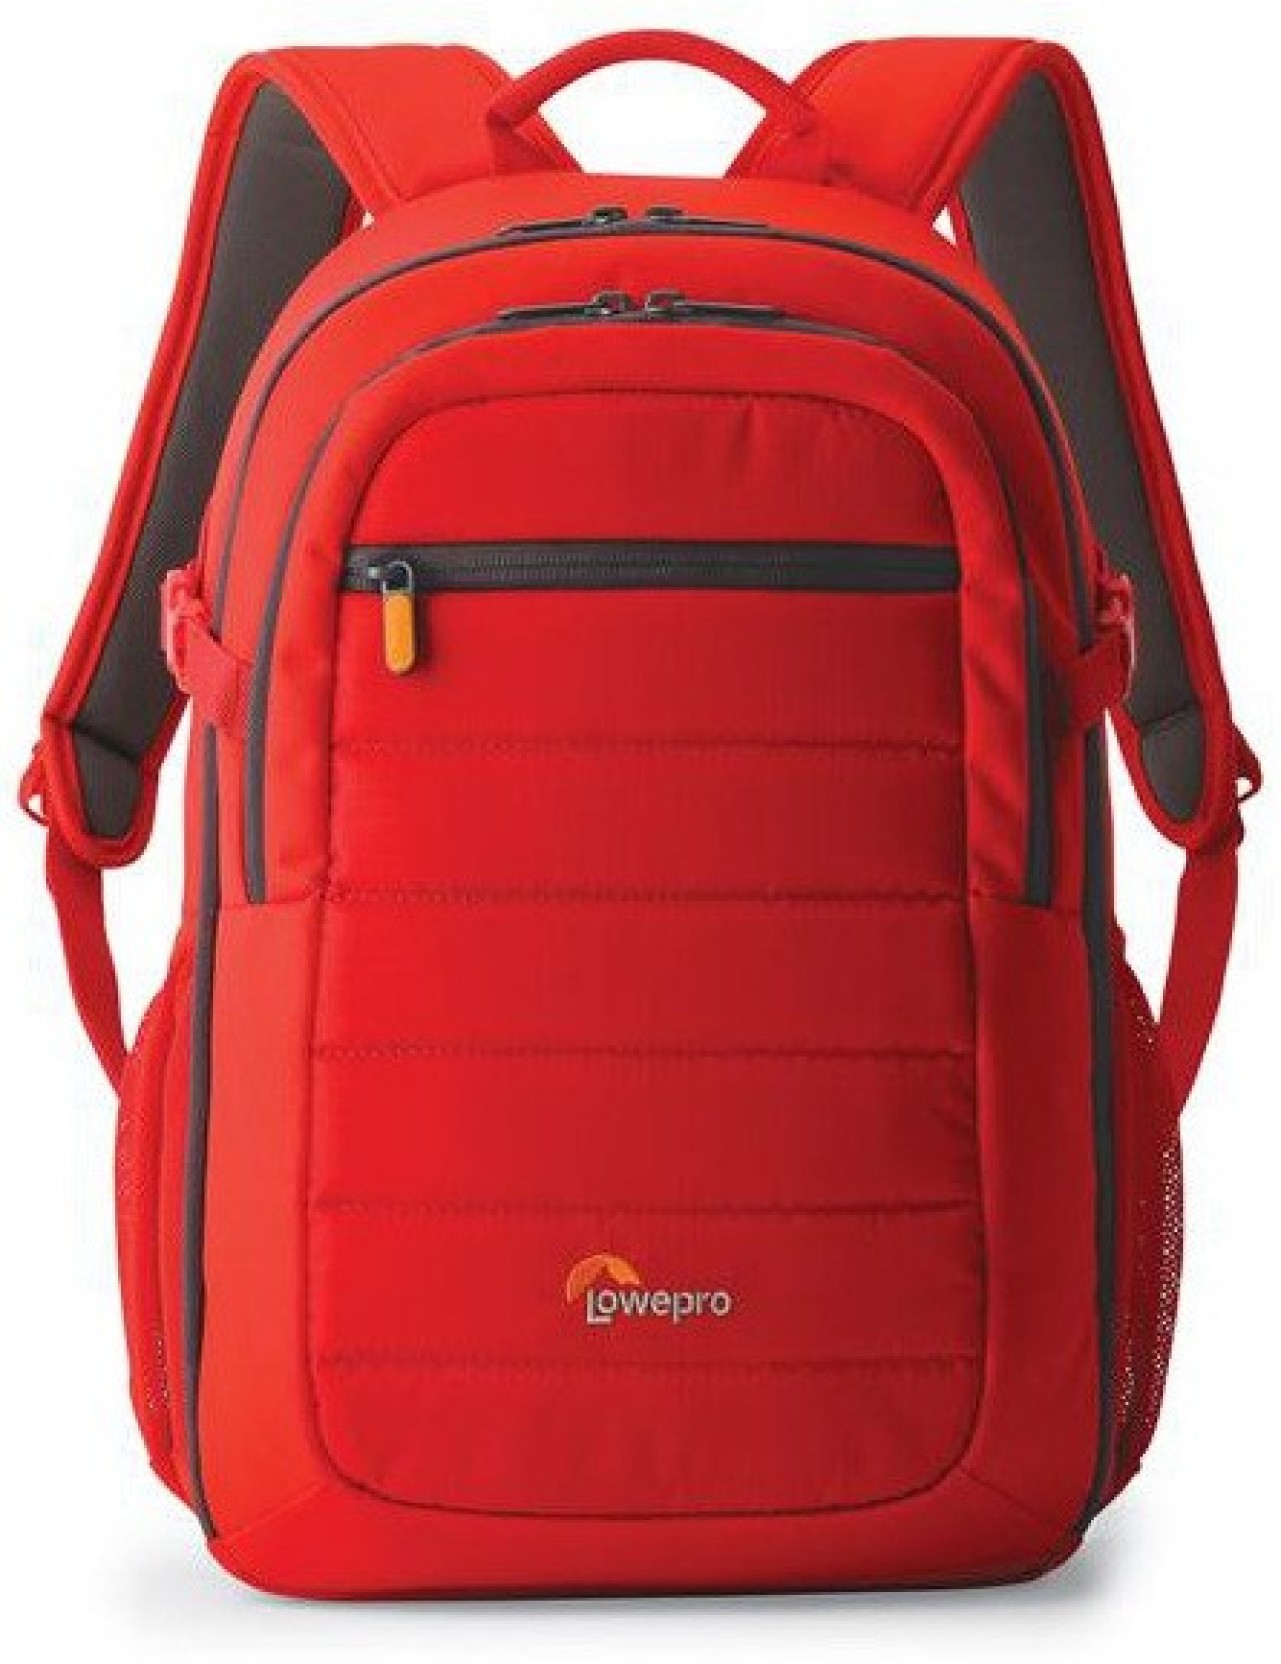 Lowepro Tahoe Bp 150 Mineral Red Camera Bag Photo Hatchback 16l Aw Add To Cart